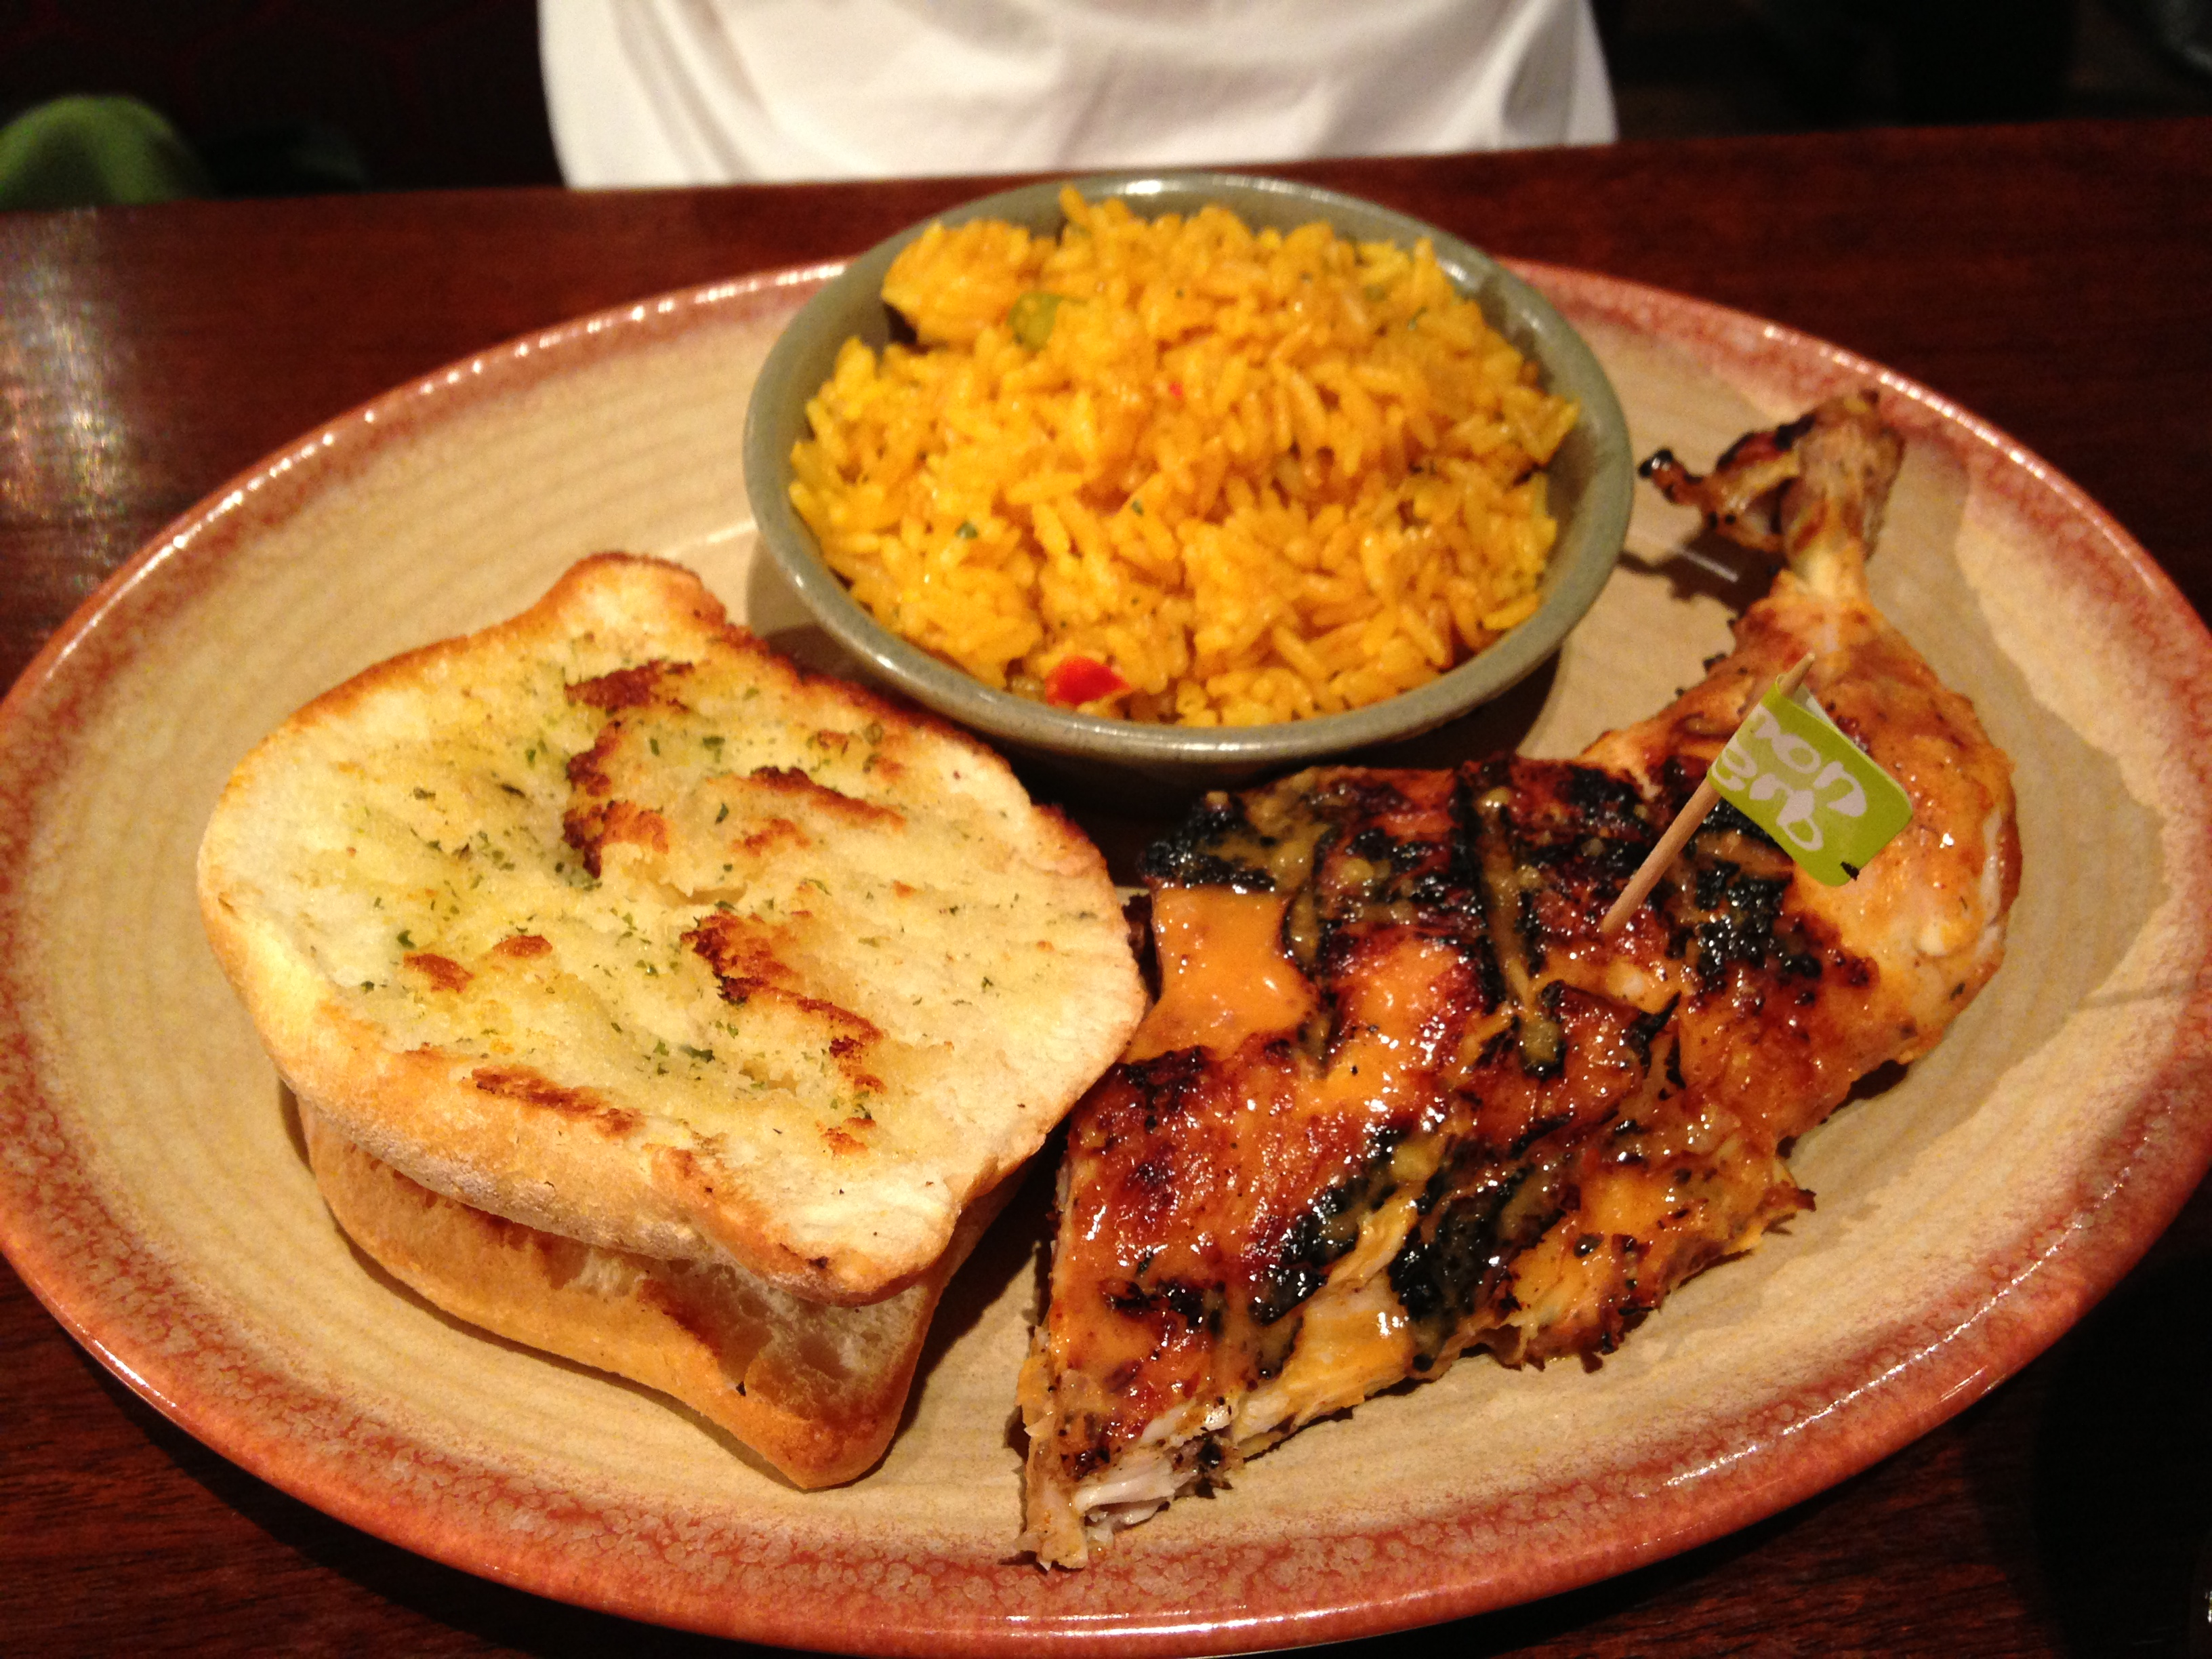 nando's grilled chicken dark meat with sides of rice and garlic bread